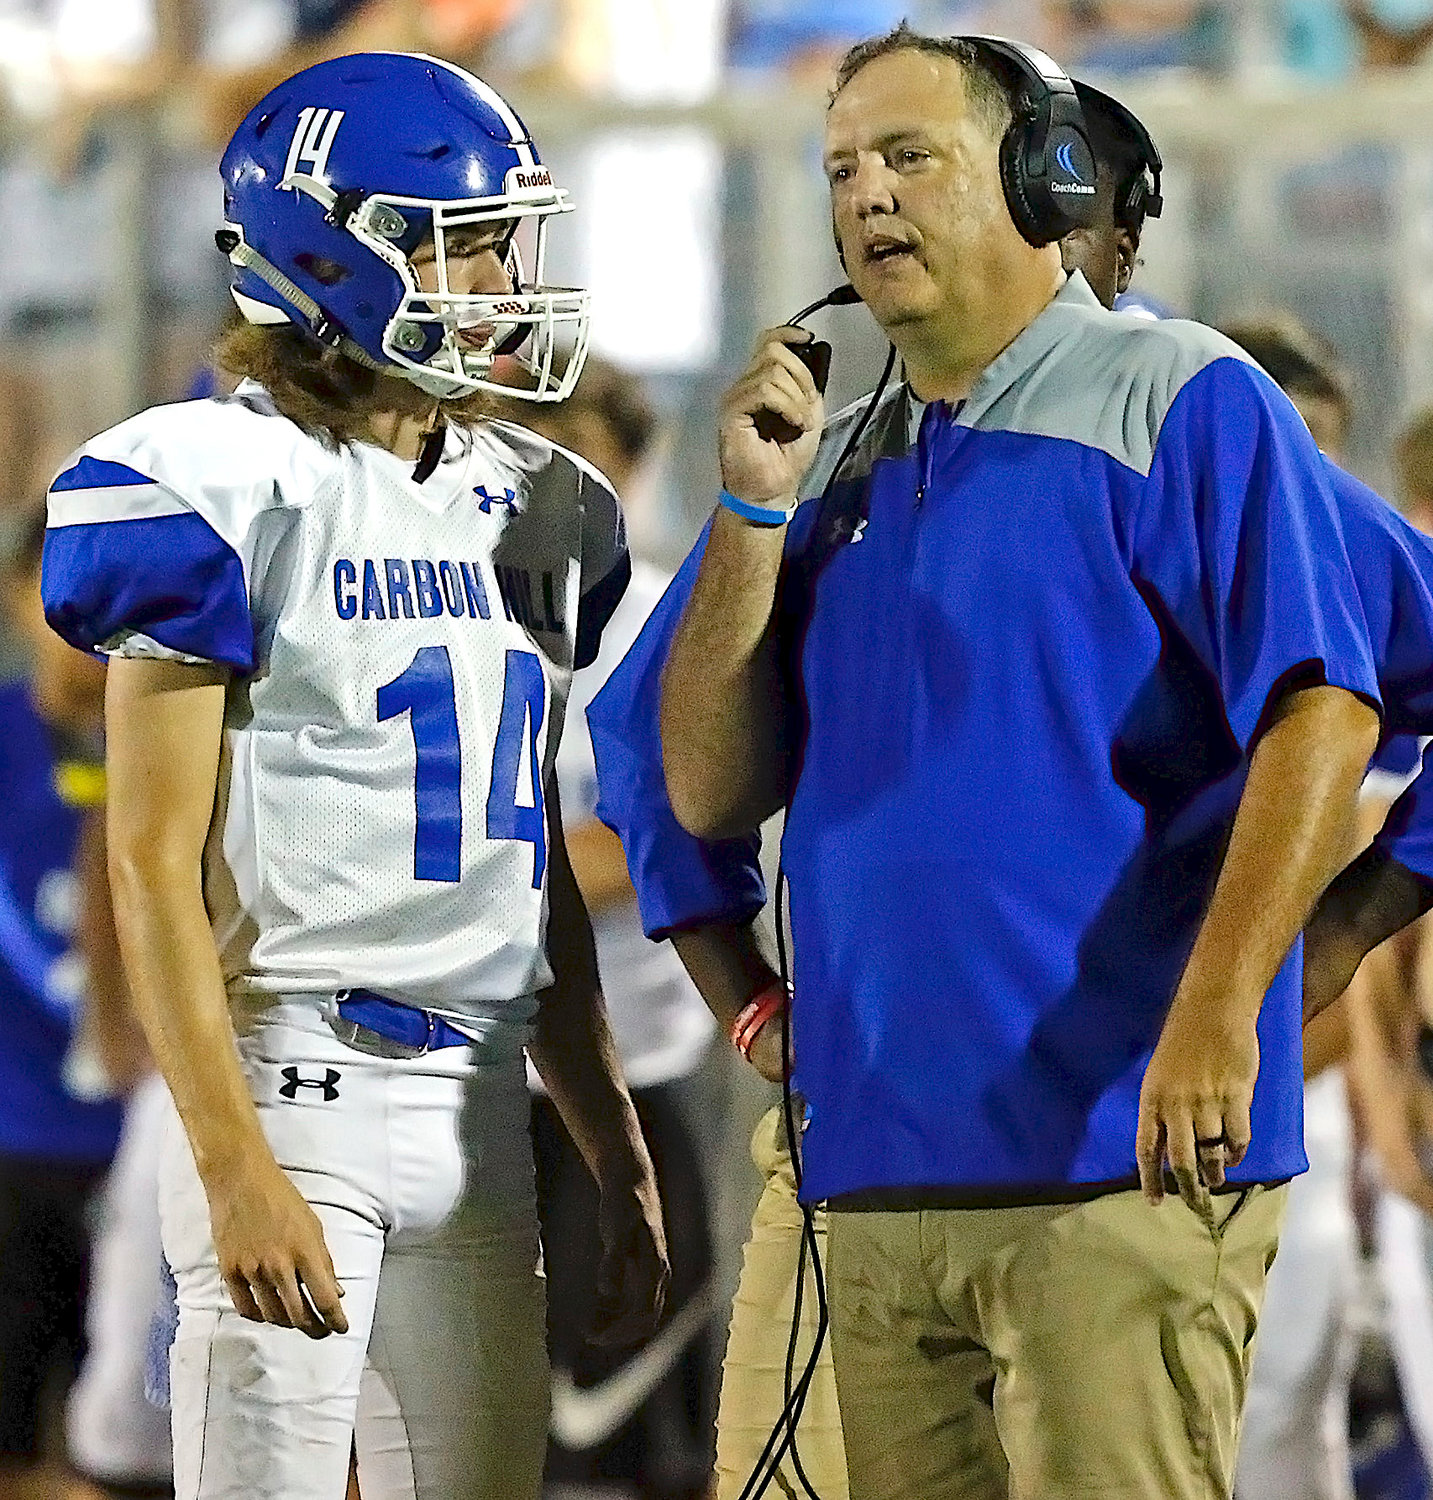 Carbon Hill football coach Scott Curd, right, talks with quarterback Jon Michael Madison during last season's game against Oakman. Curd is leaving his post after three years at the helm of the program. He led the Bulldogs to a 5-5 mark in 2018.